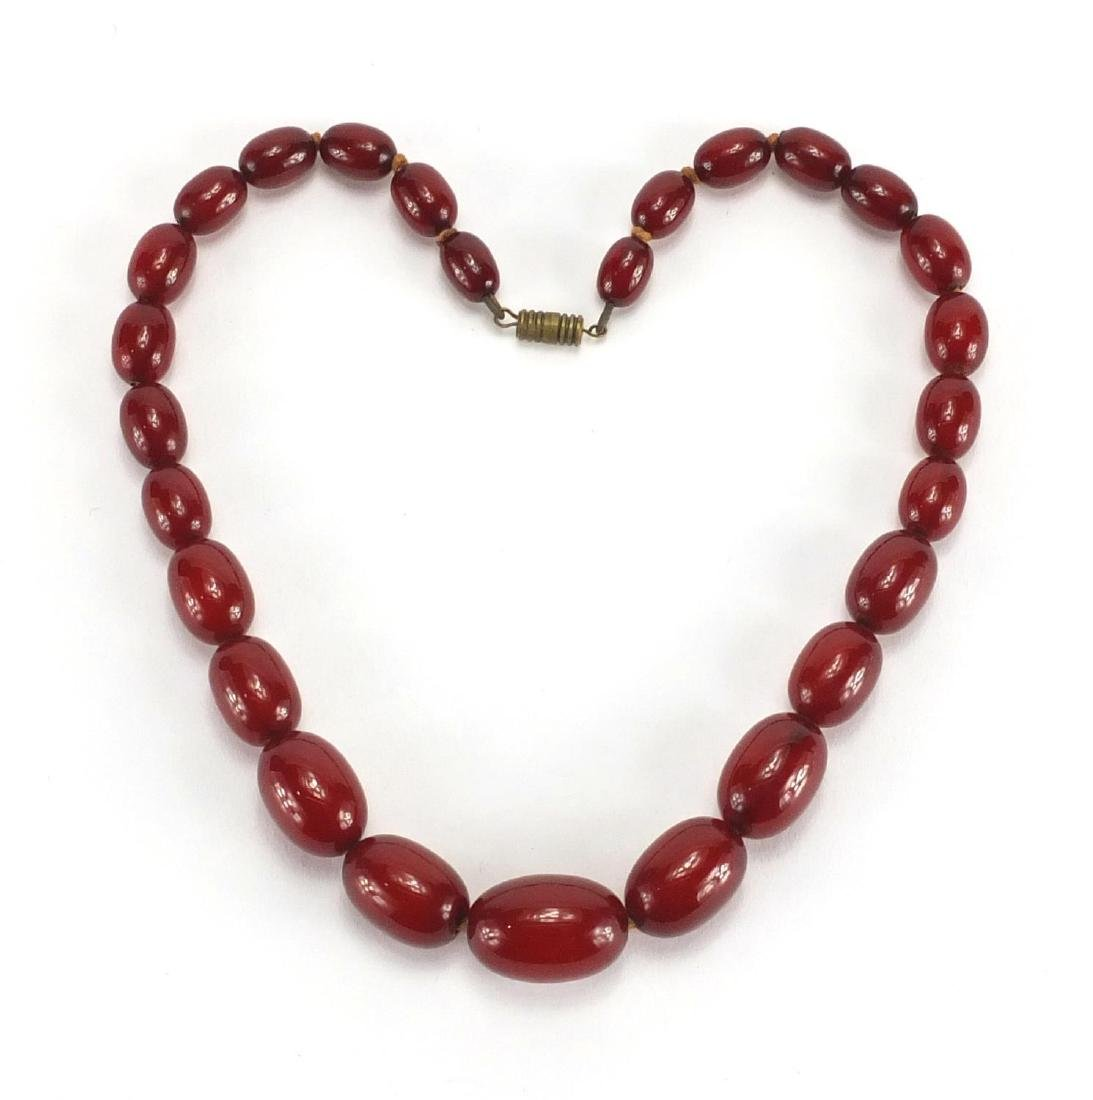 Cherry amber coloured bead necklace, 40cm in length, approximate weight 35.2g Further condition